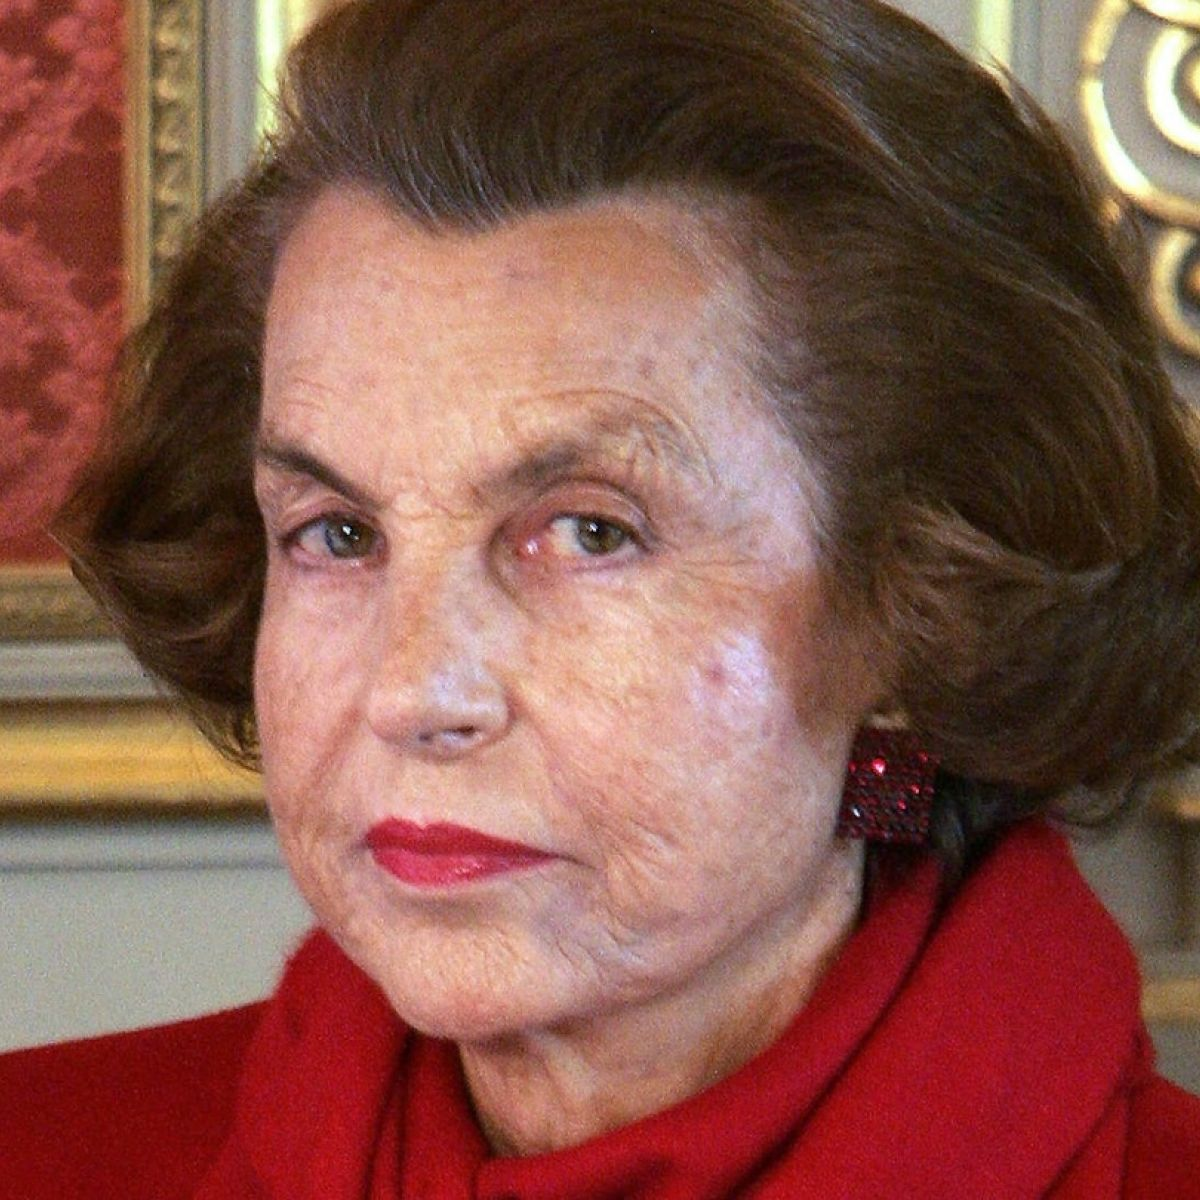 The richest woman in the world, Lilian Bettencourt, died at the age of 94